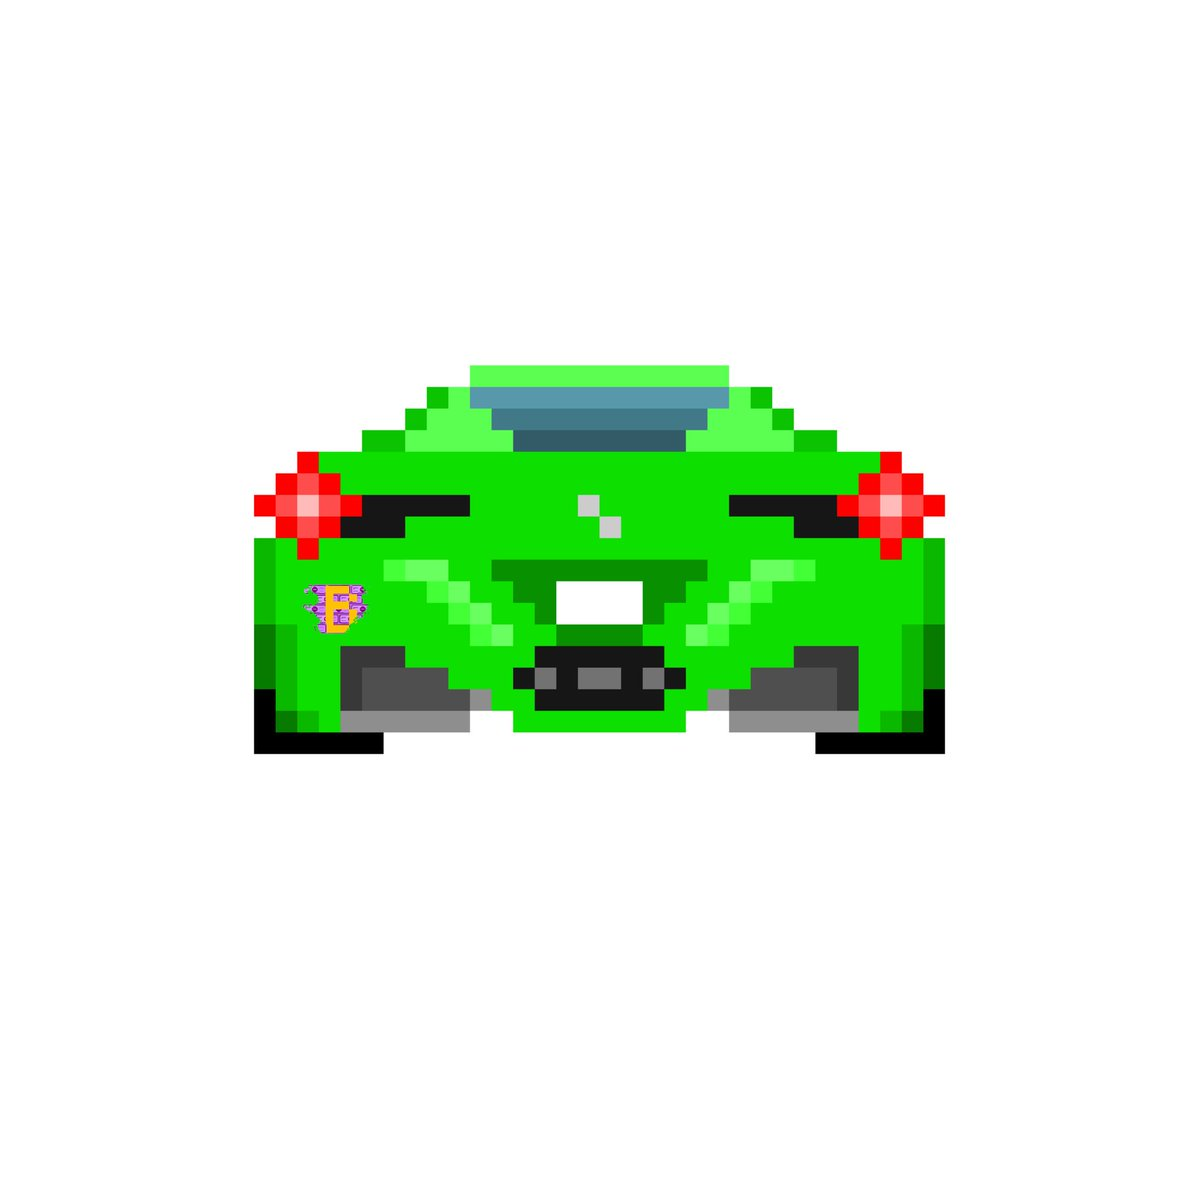 Superbrick On Twitter Ferrari 458 Pixel Art Pixelart Art